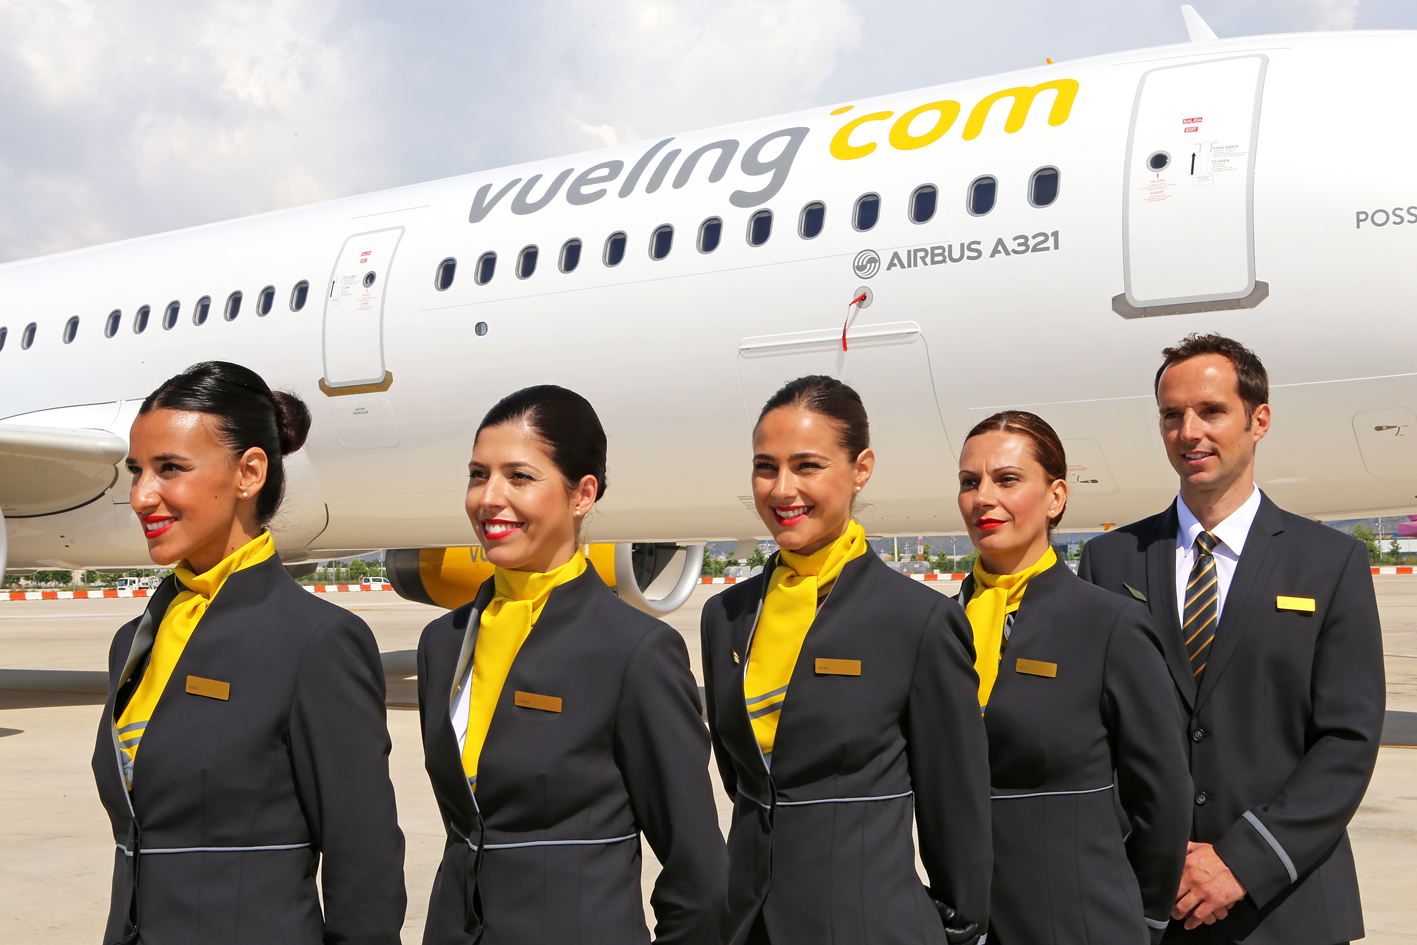 Anniversary celebrations for Vueling